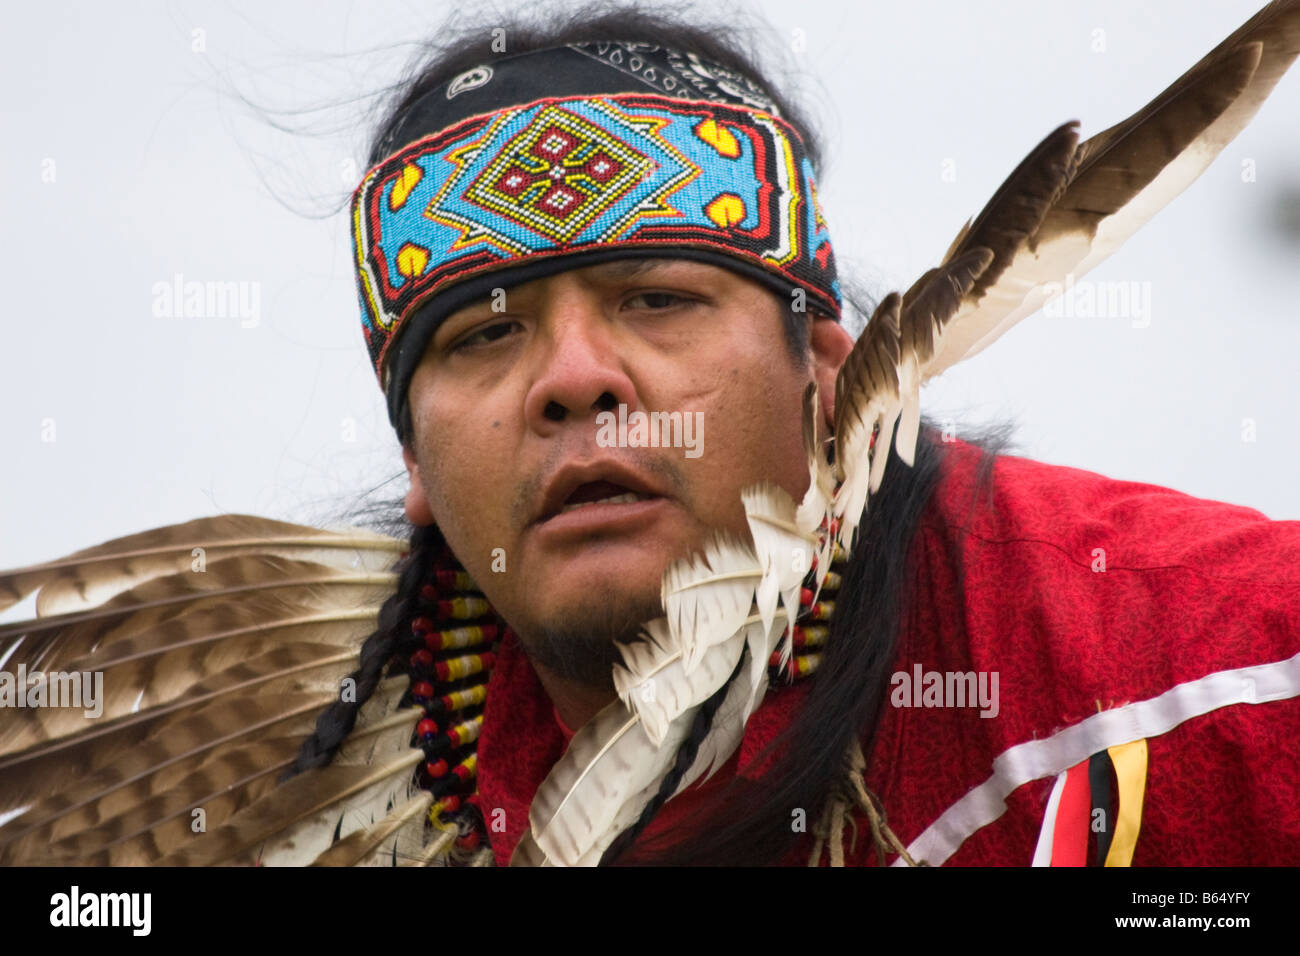 cherokee indian feather stock photos & cherokee indian